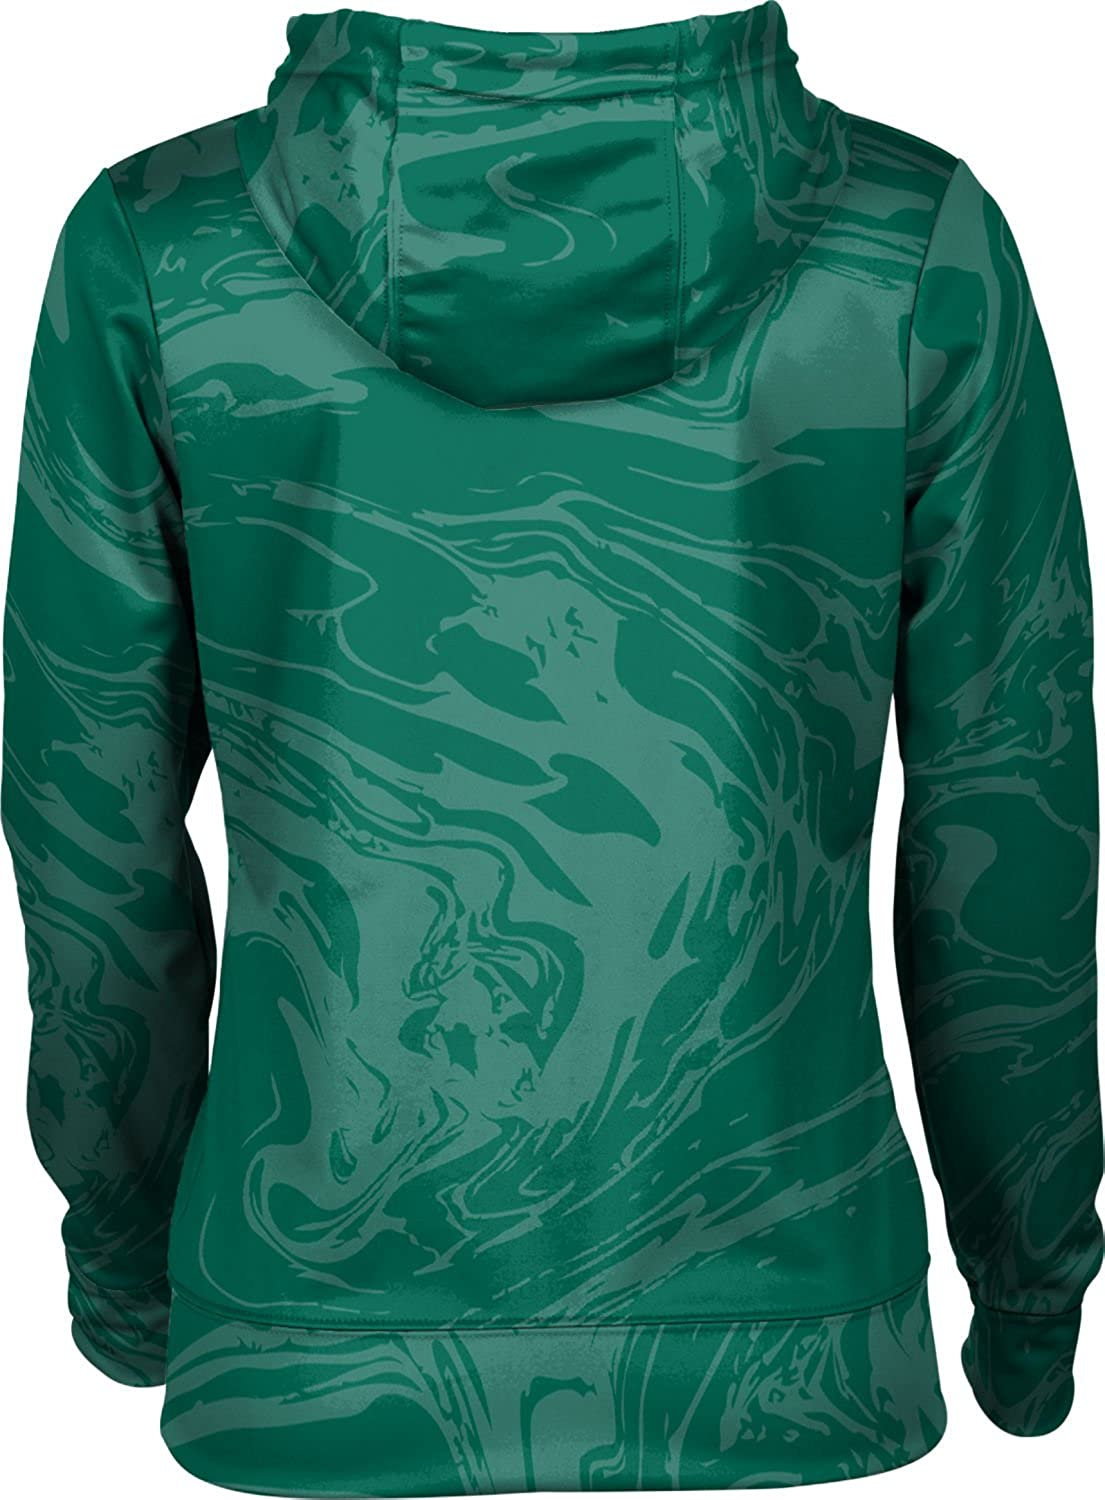 School Spirit Sweatshirt ProSphere Ivy Tech Community College of Indiana Girls Zipper Hoodie Ripple